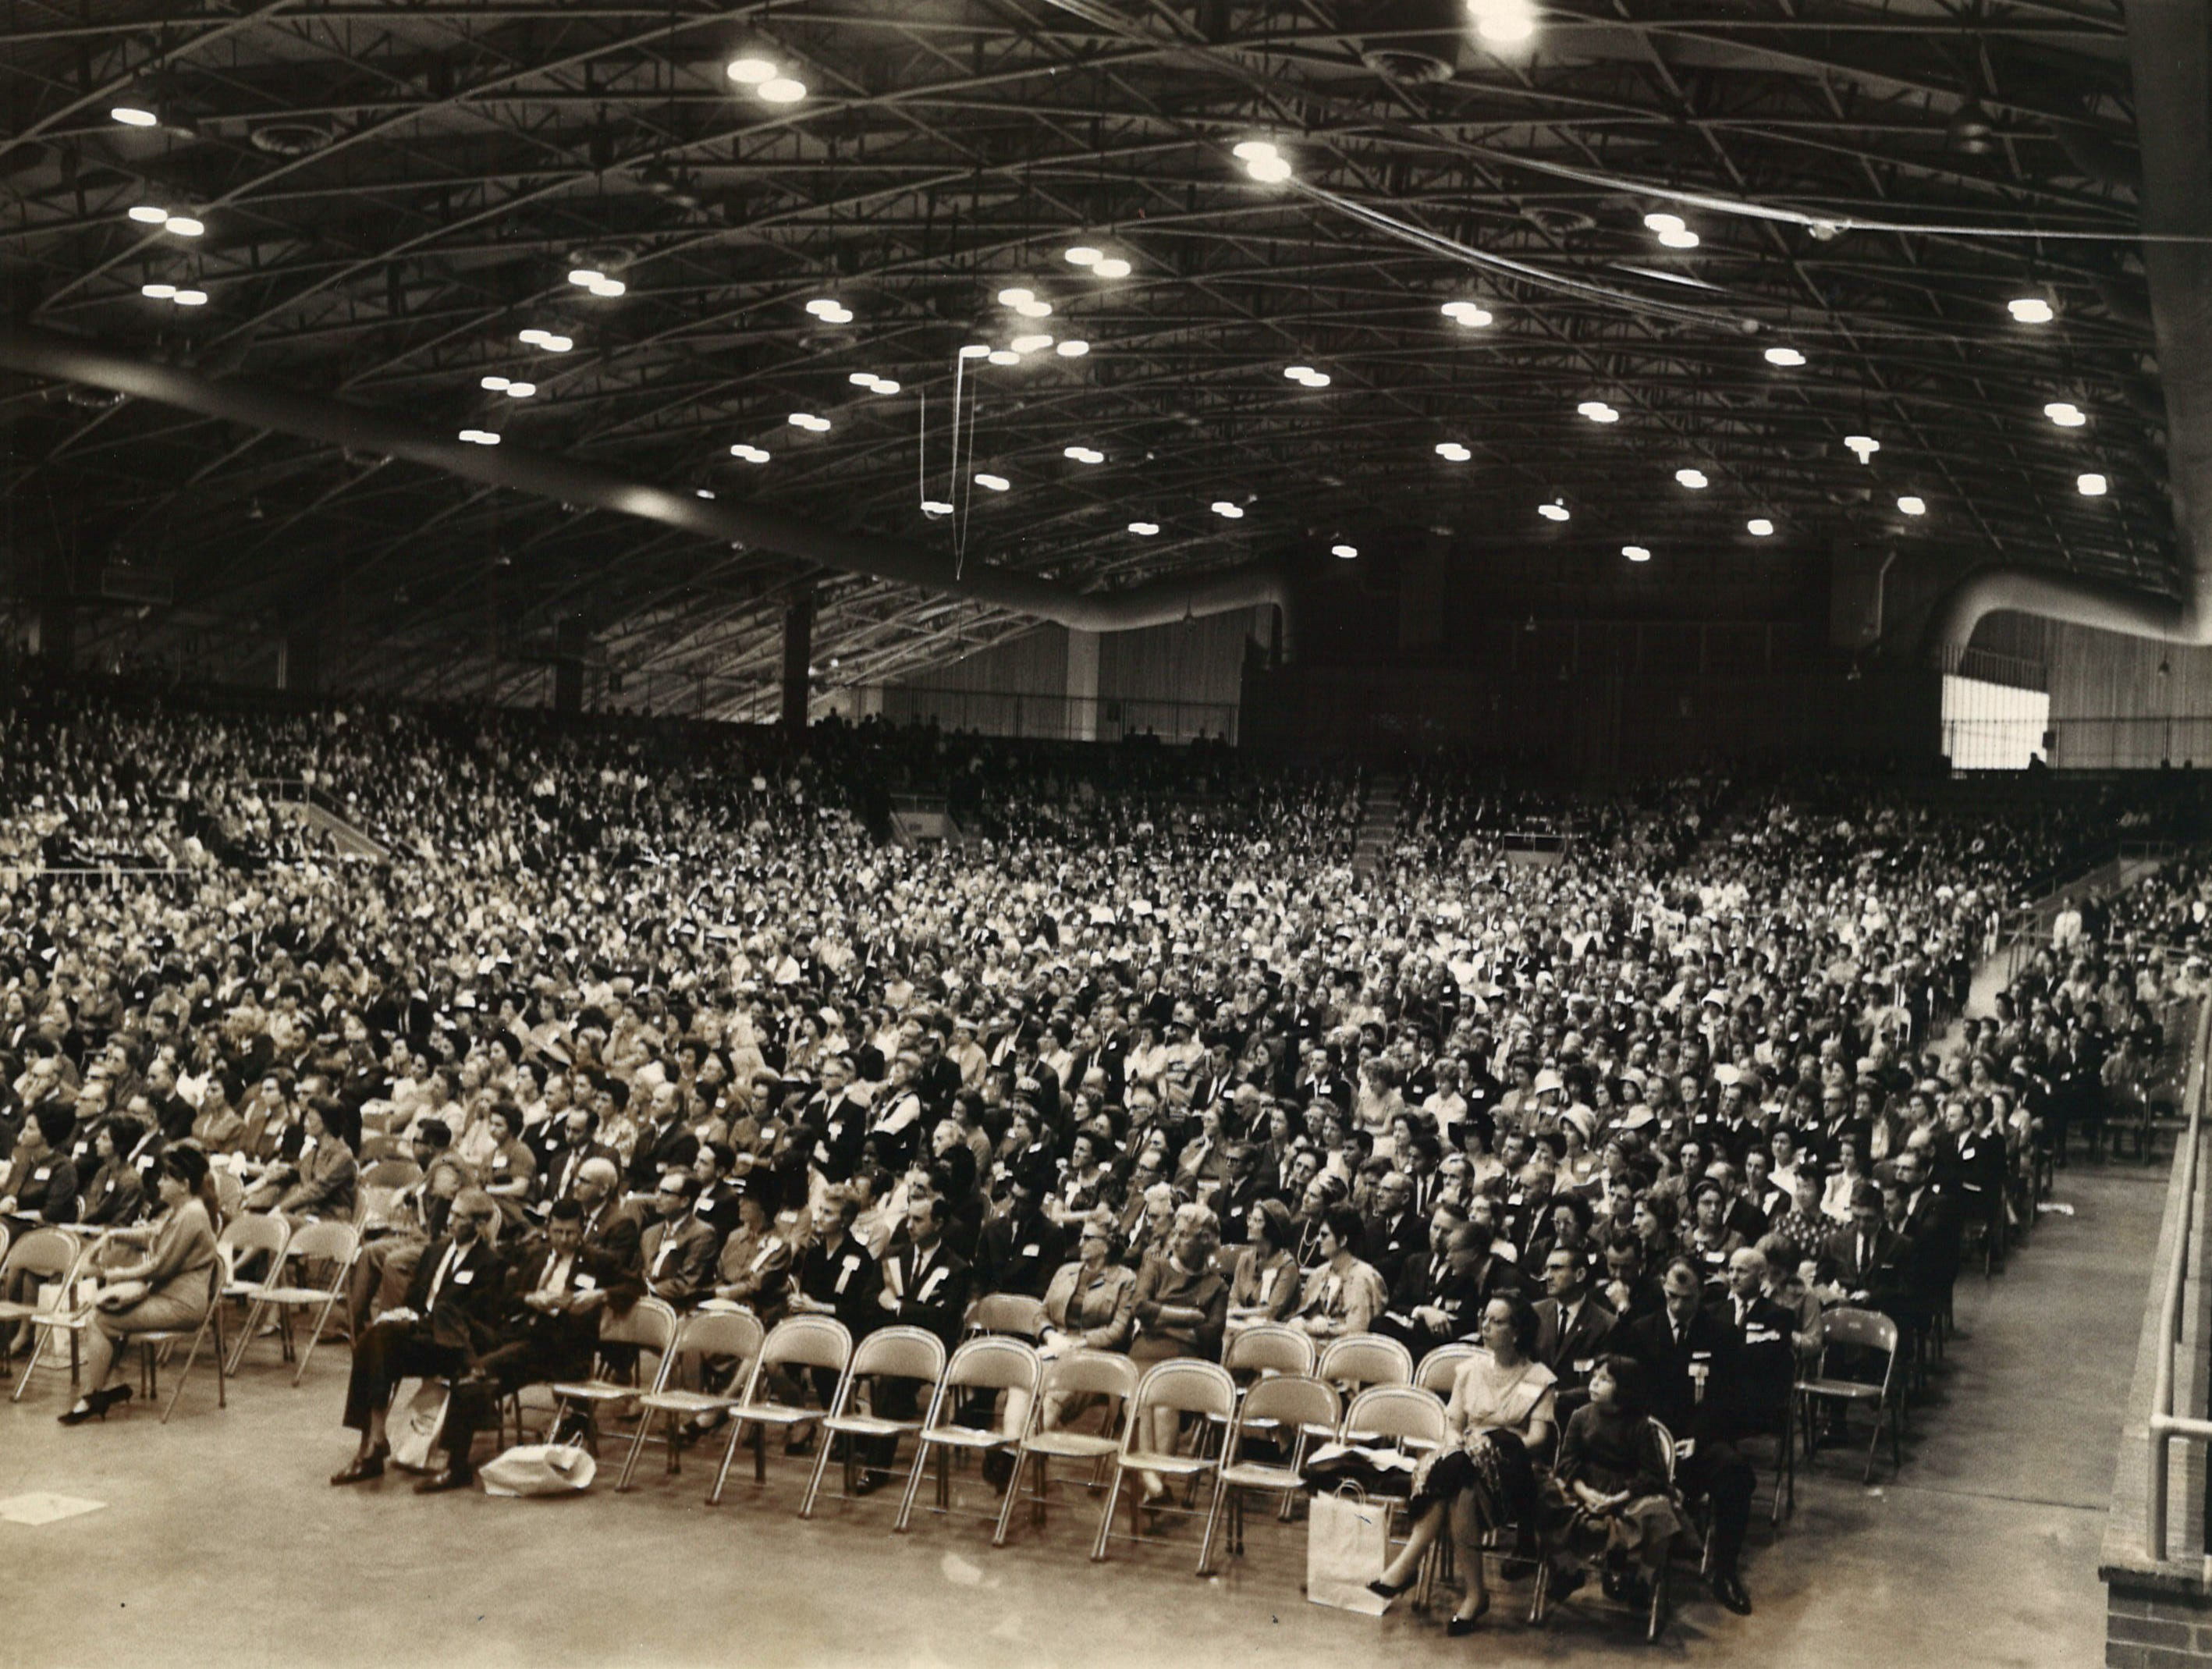 An unidentified event takes place in Corpus Christi's Memorial Coliseum in this undated photo from the Caller-Times archives. Recognize the event? Send us an email at metrodesk@caller.com.